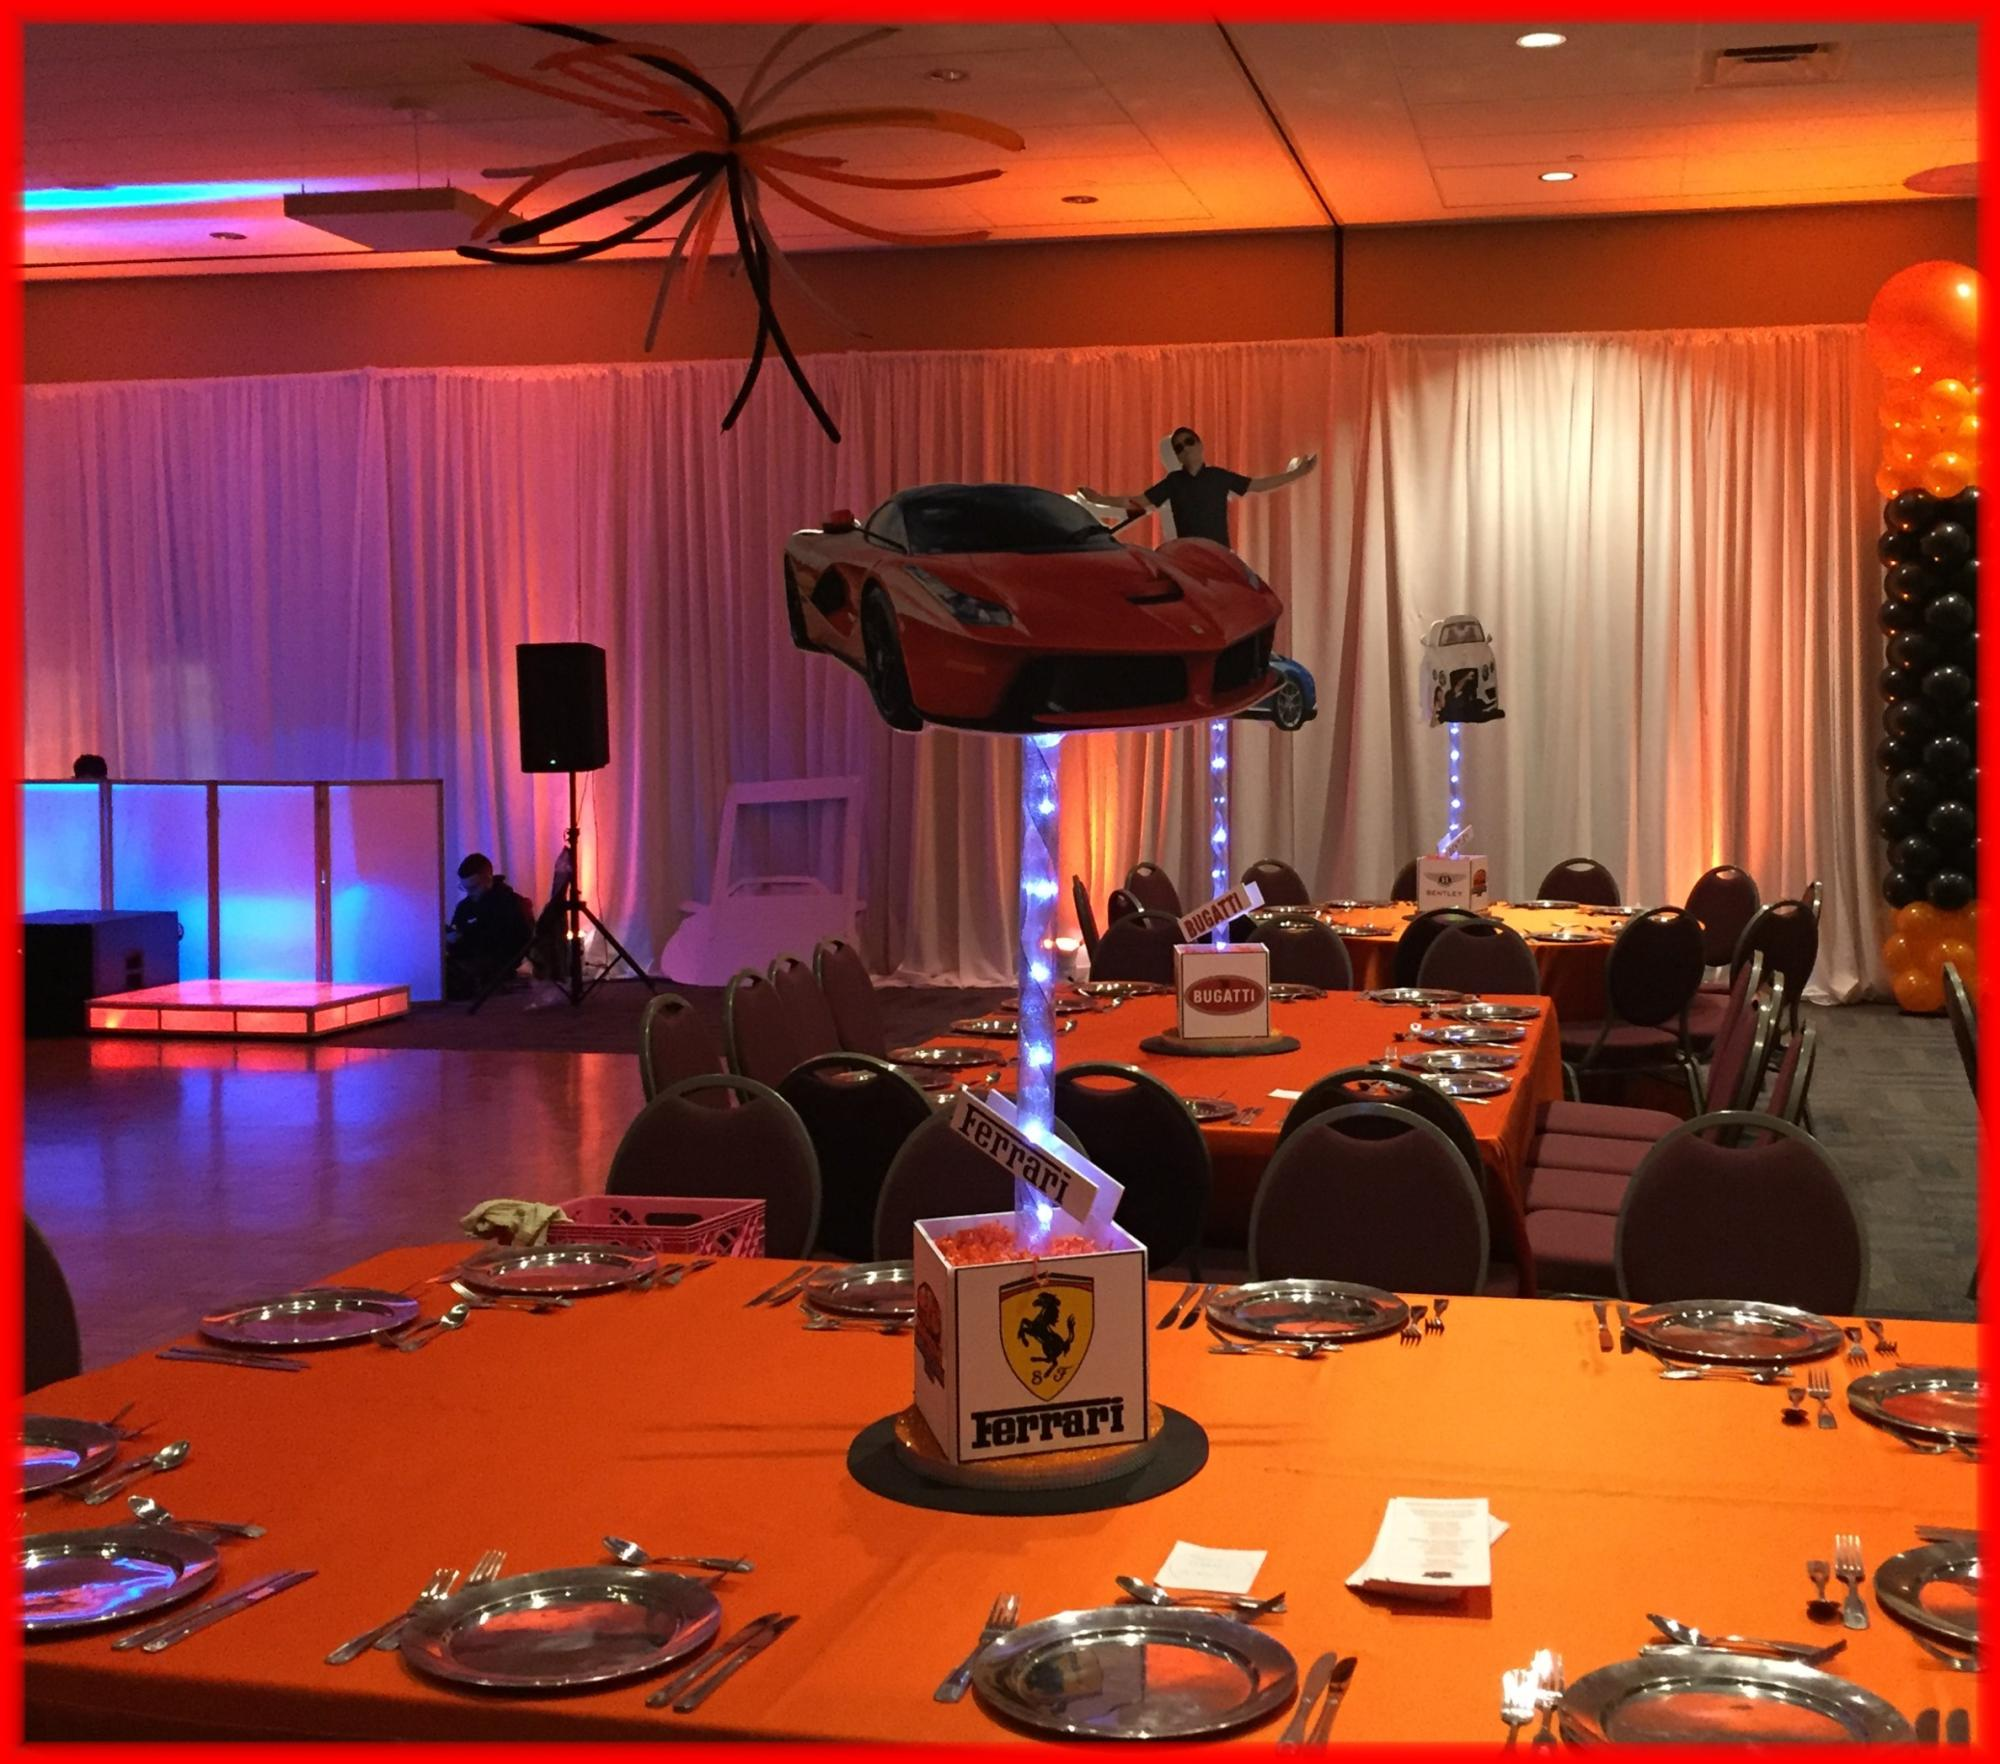 Luxury sports car Bar Mitzvah